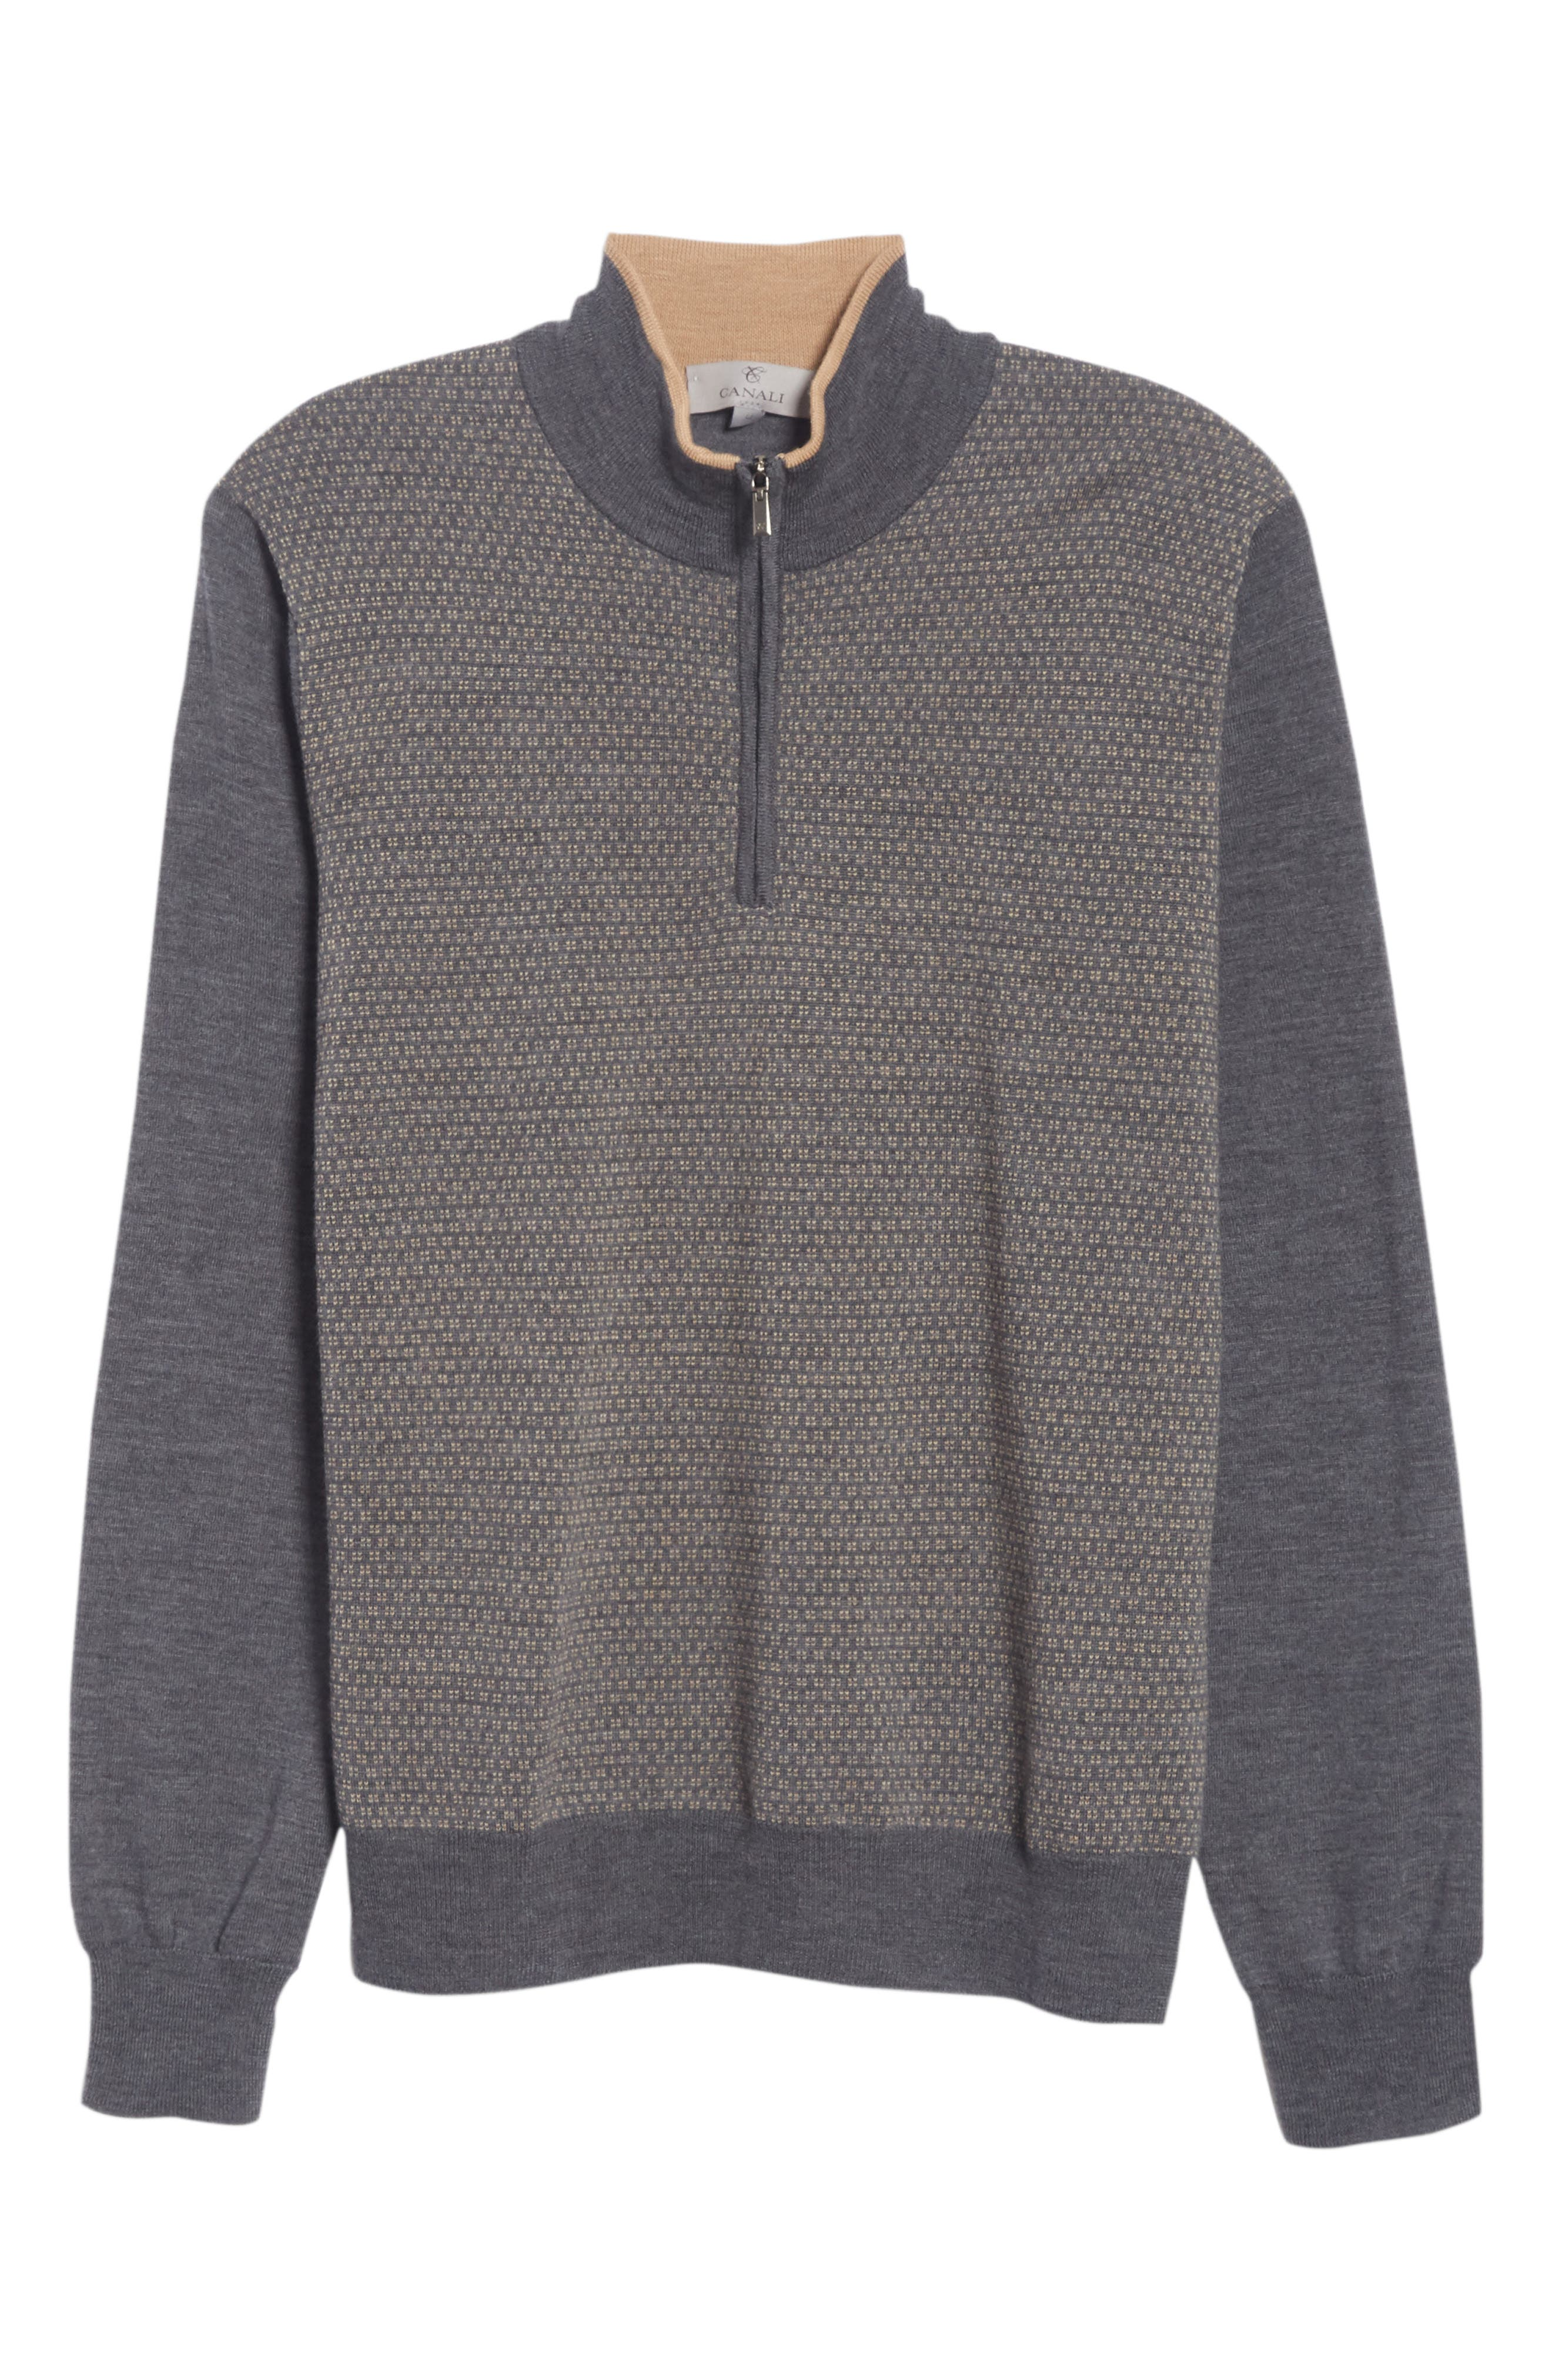 Quarter Zip Wool Sweater,                             Alternate thumbnail 6, color,                             020